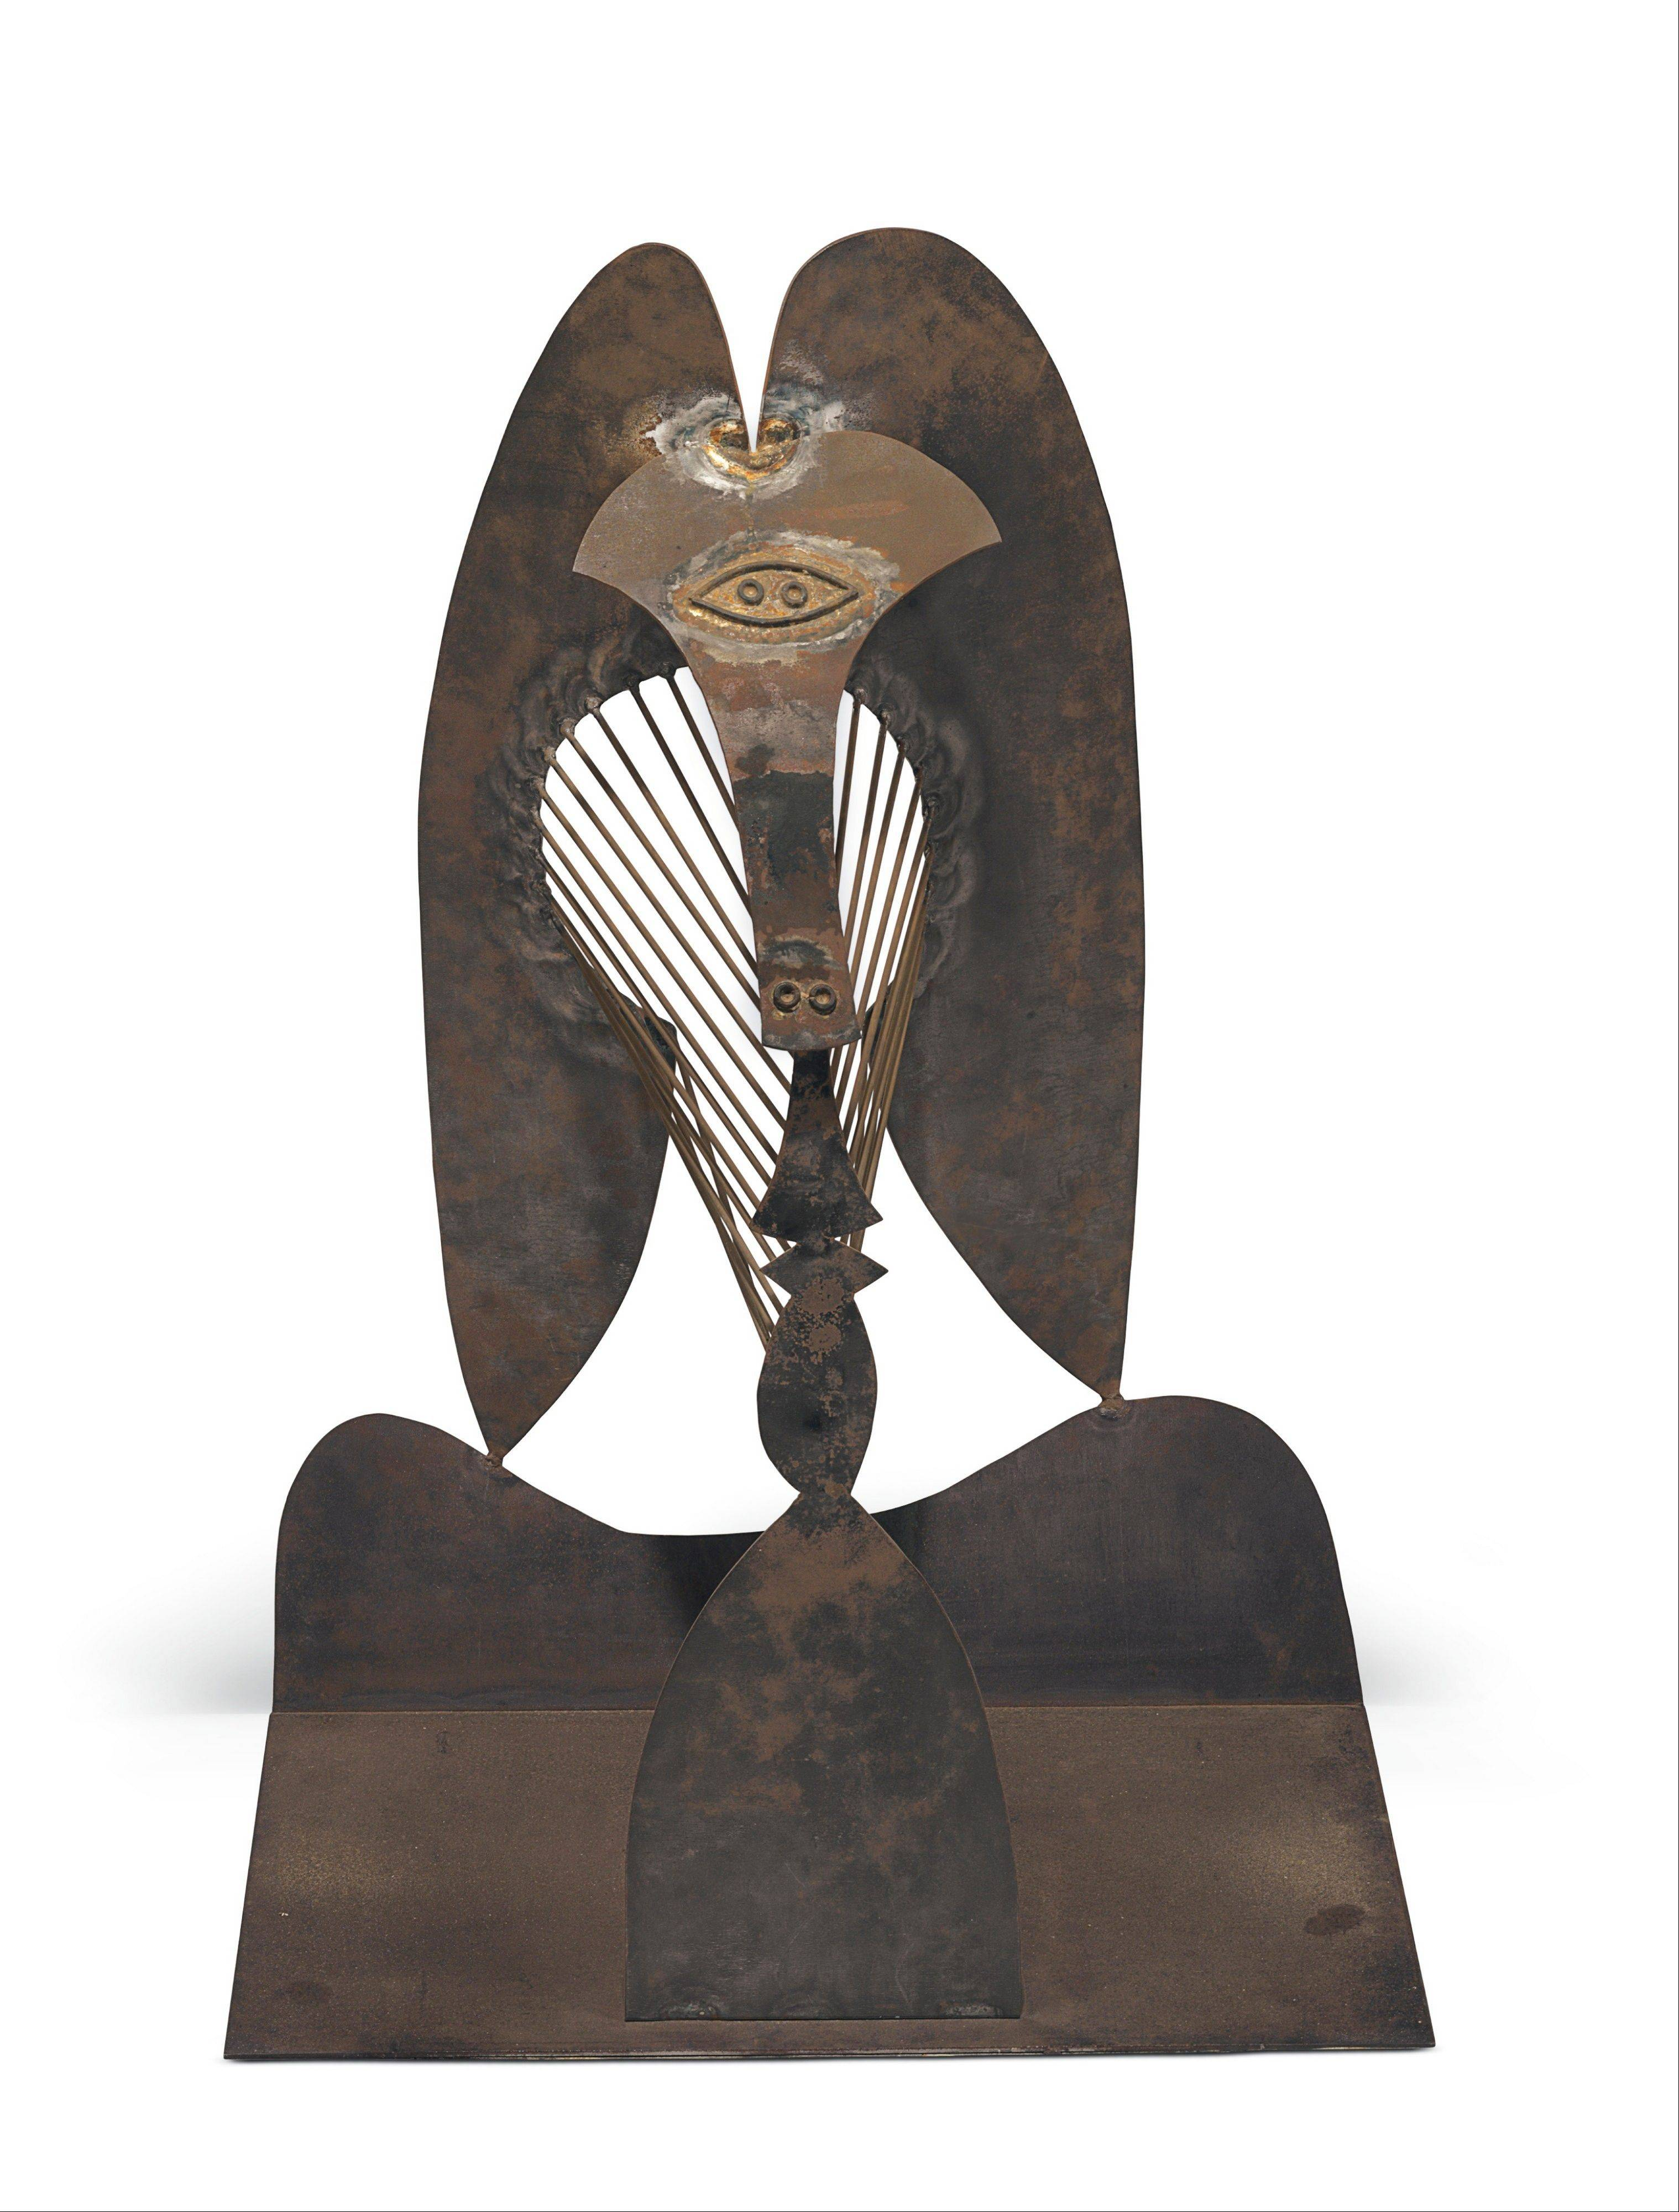 A model of Pablo Picasso�s famed Chicago sculpture named �Tete.� The late Spanish artist created the piece between 1962 and 1964.